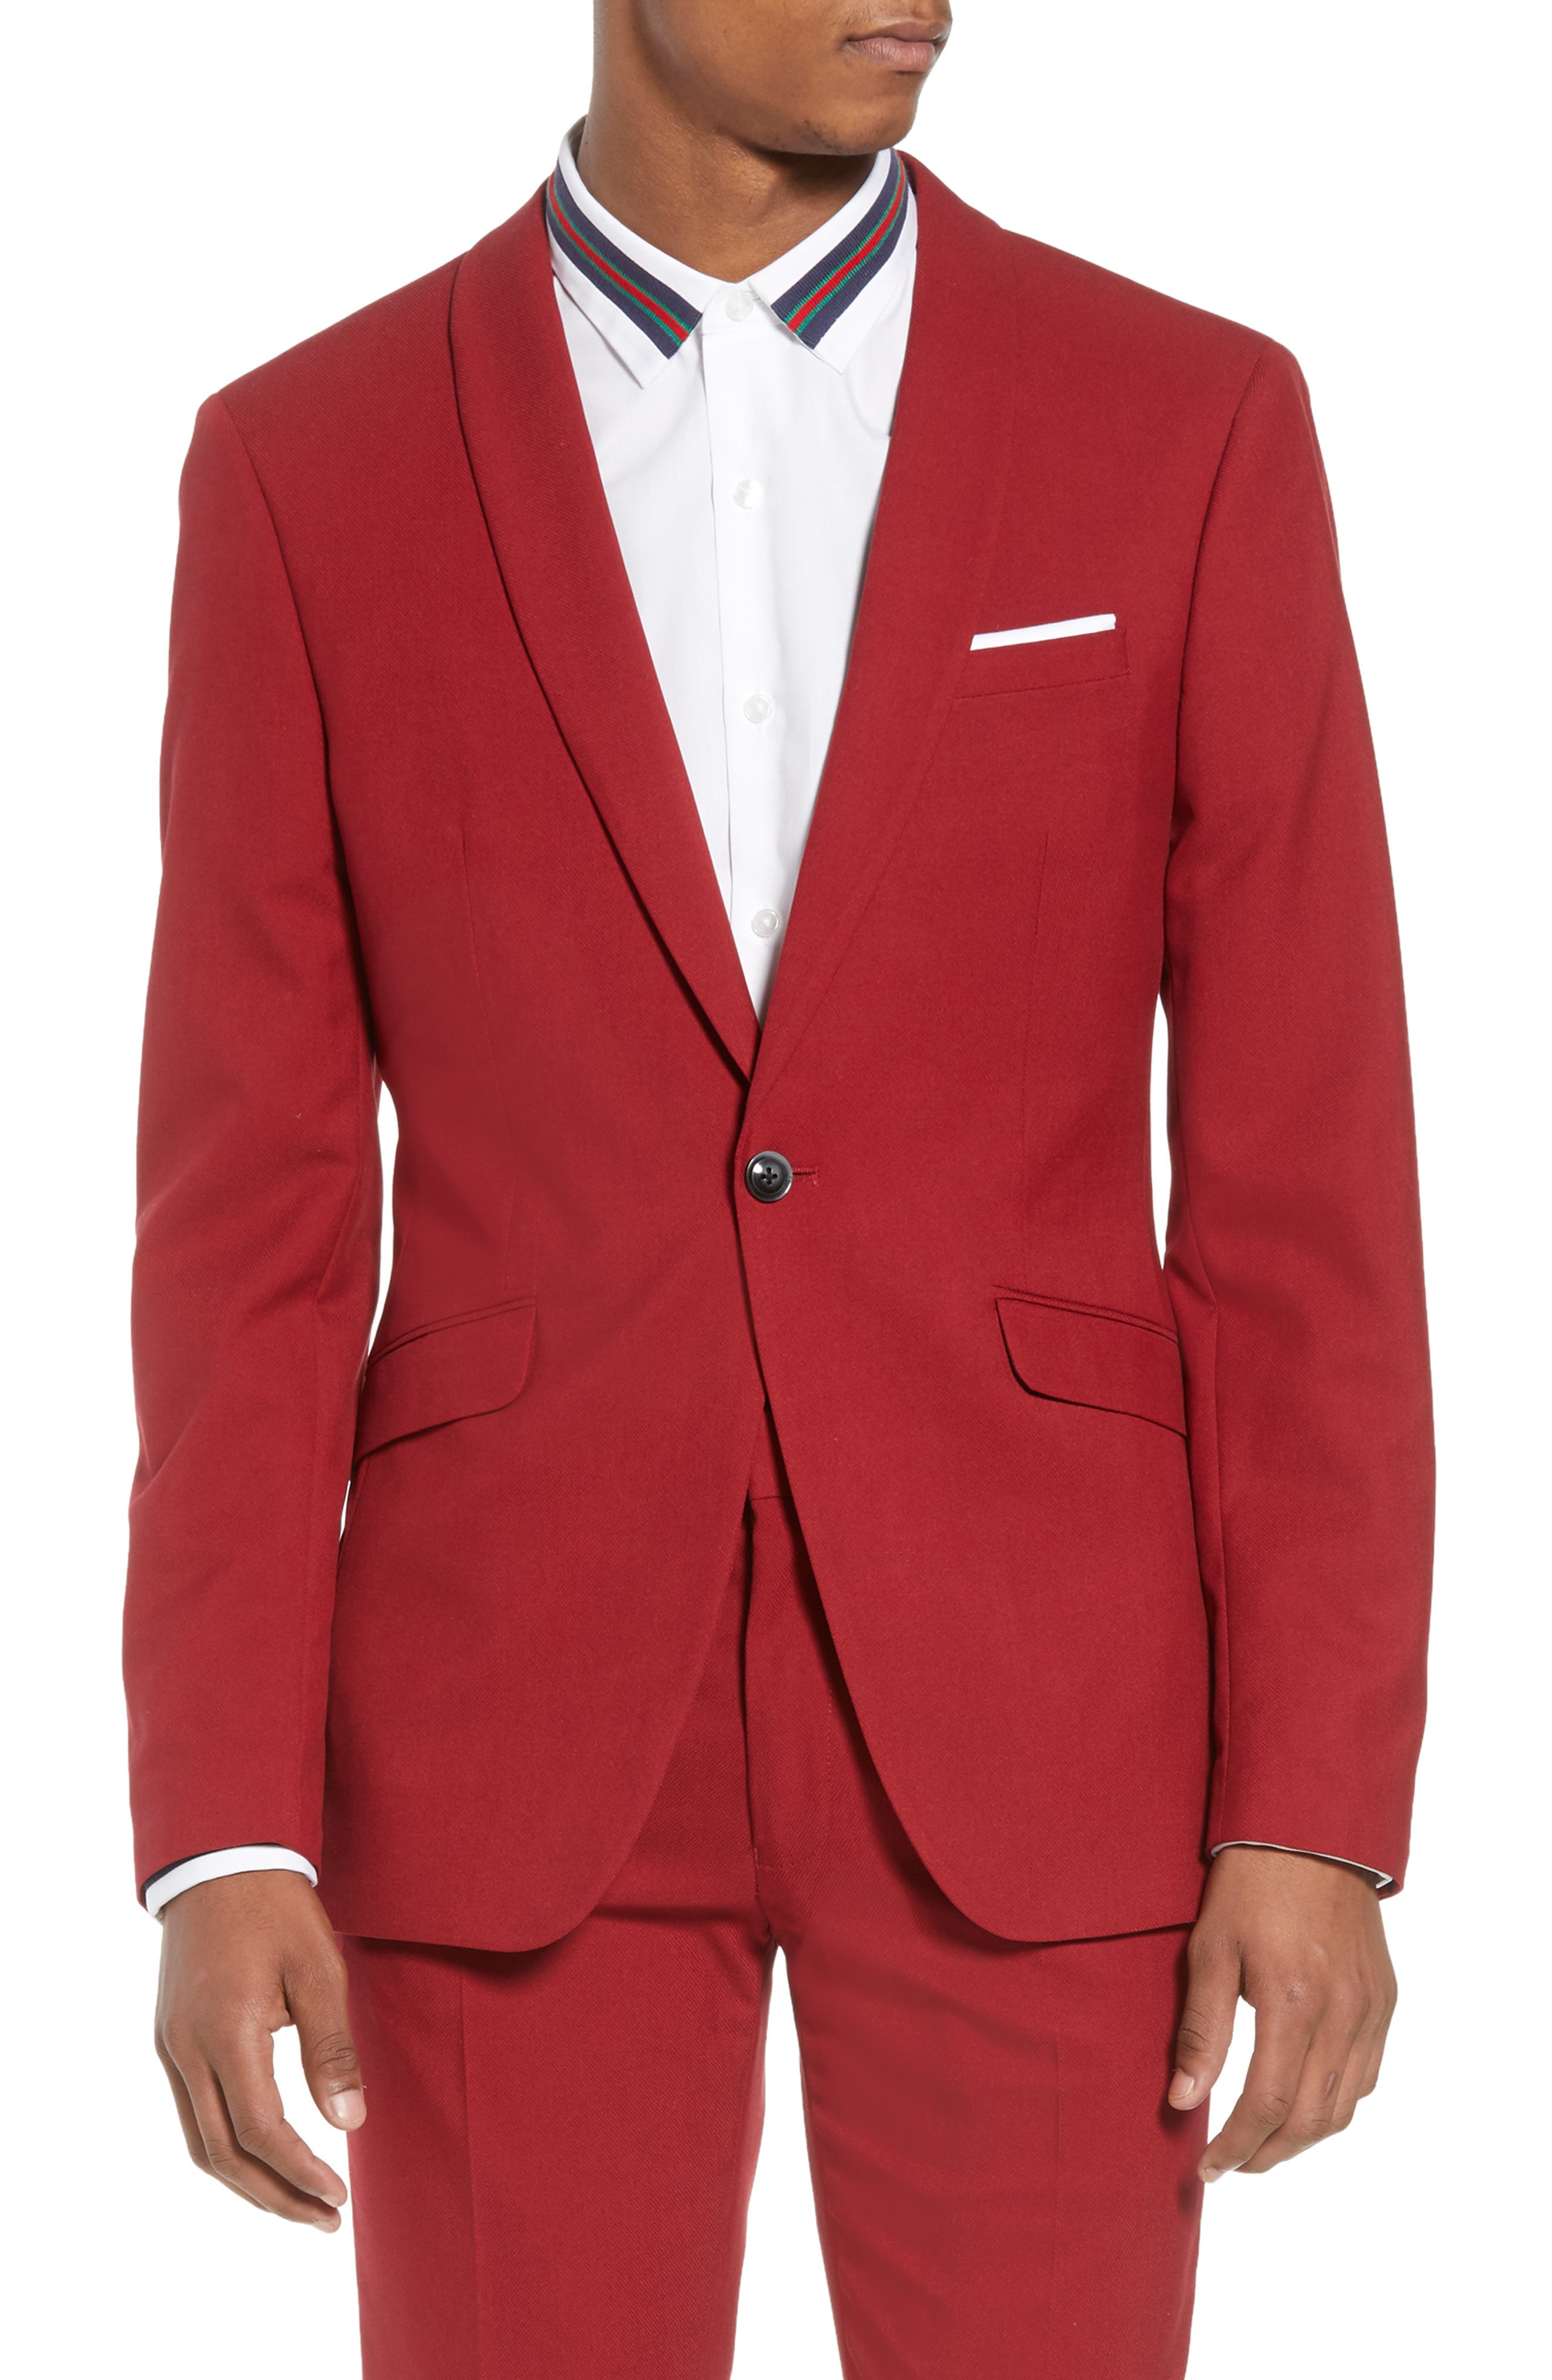 Skinny Fit Suit Jacket,                             Main thumbnail 1, color,                             Red